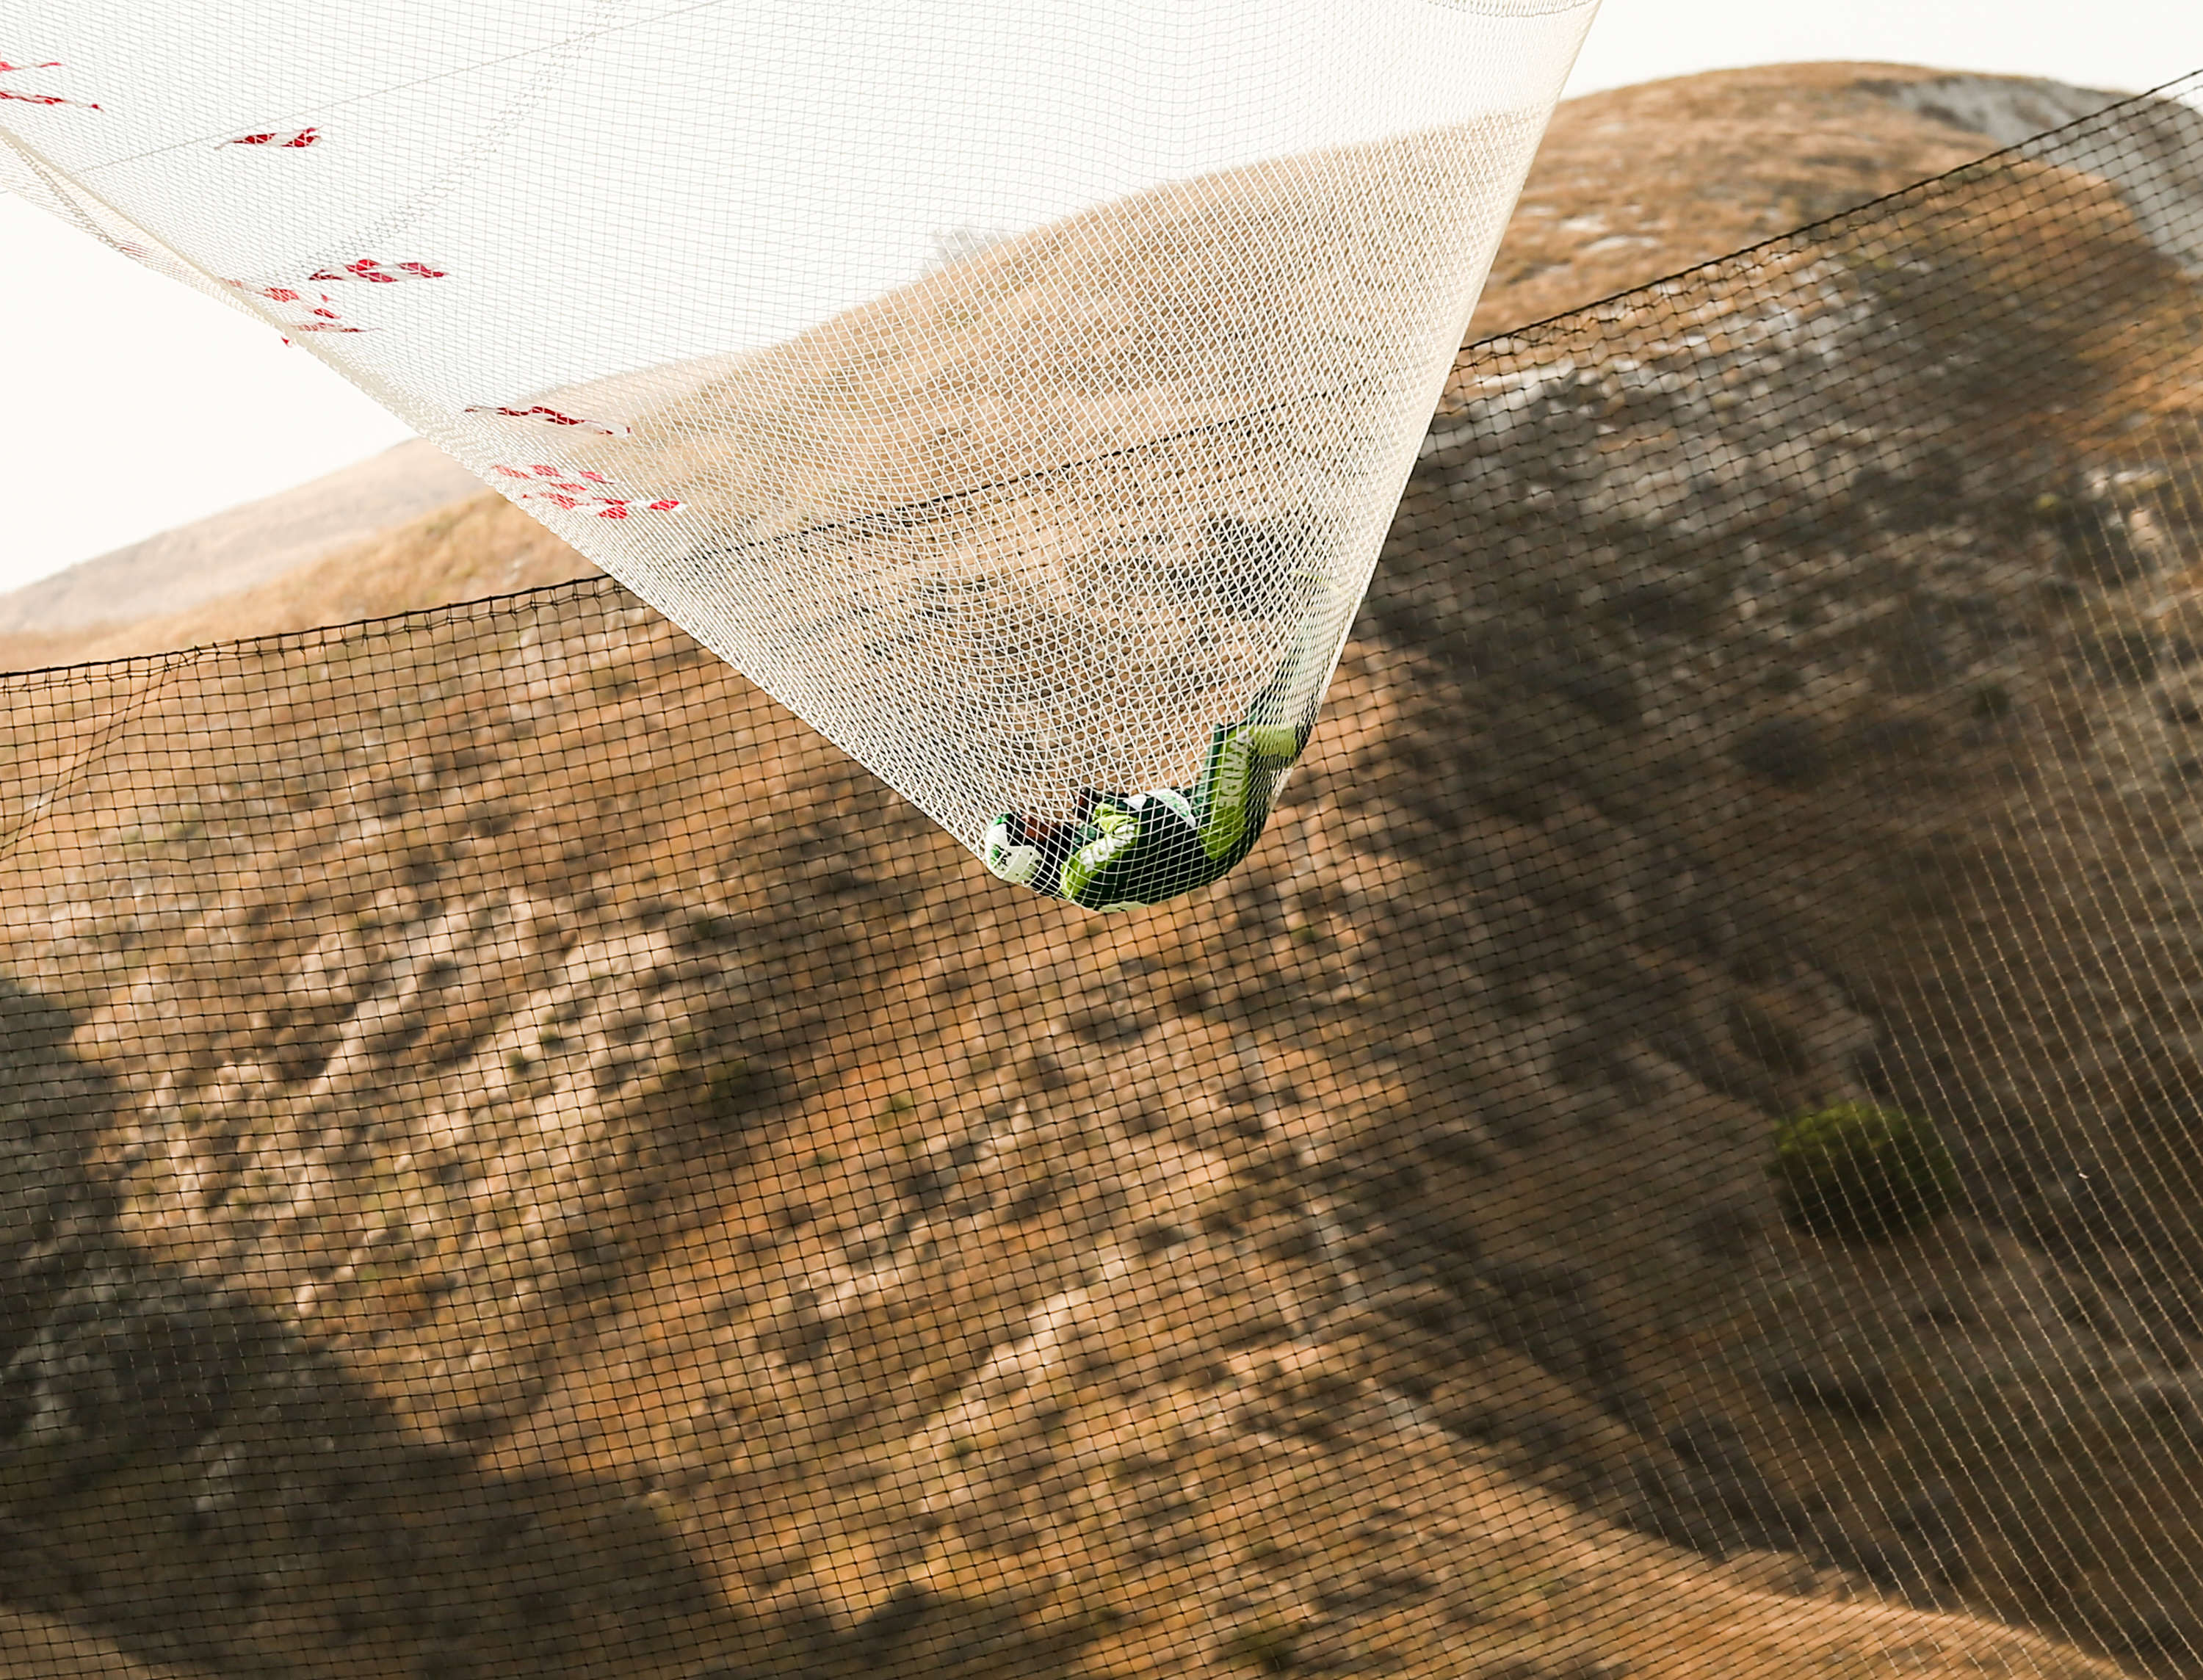 This Absolute Maniac Just Jumped 25,000ft Out A Plane With No Parachute GettyImages 584796112